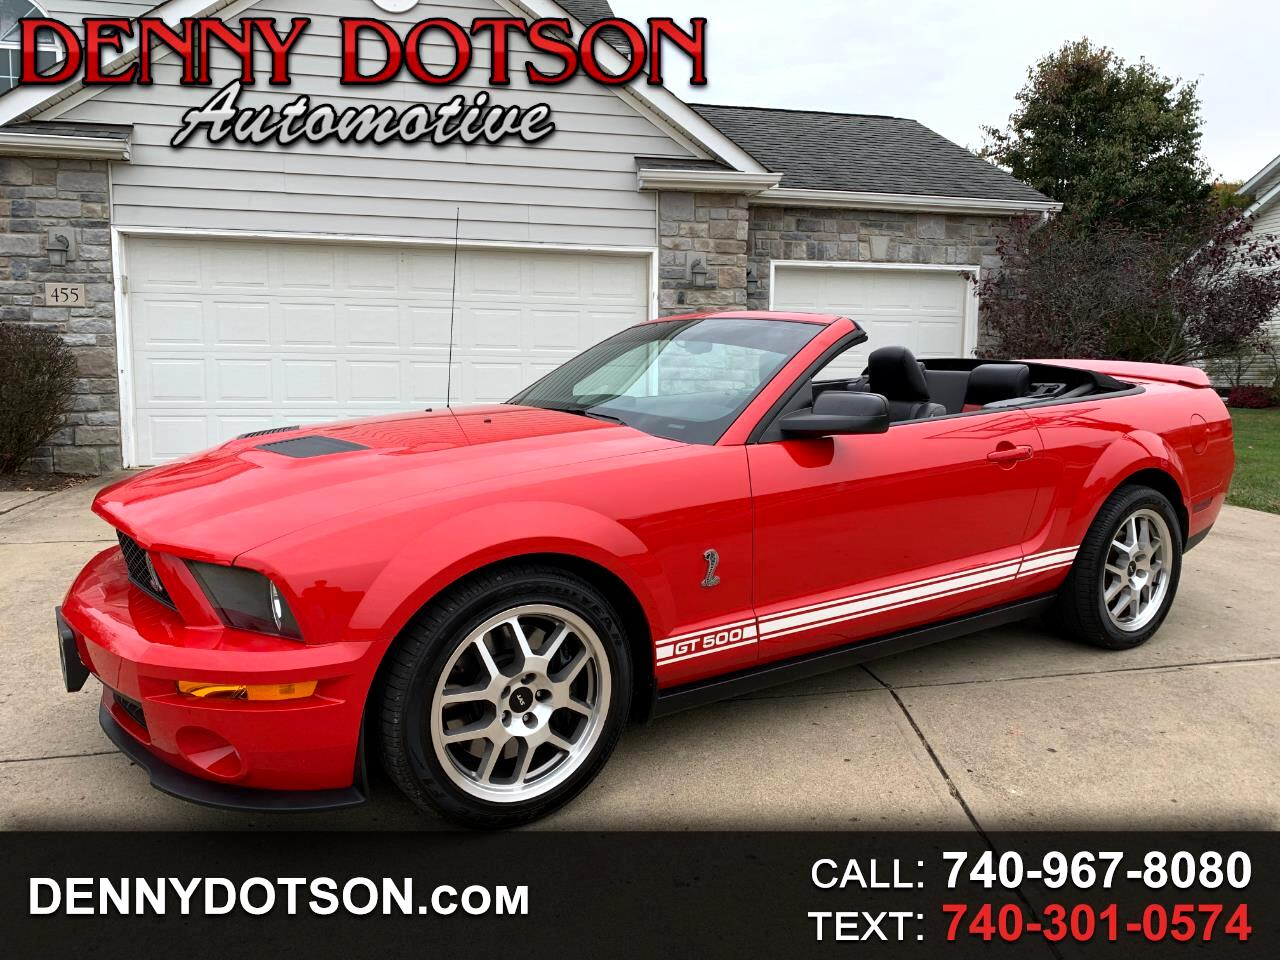 Ford Mustang 2dr Conv Shelby GT500 2007